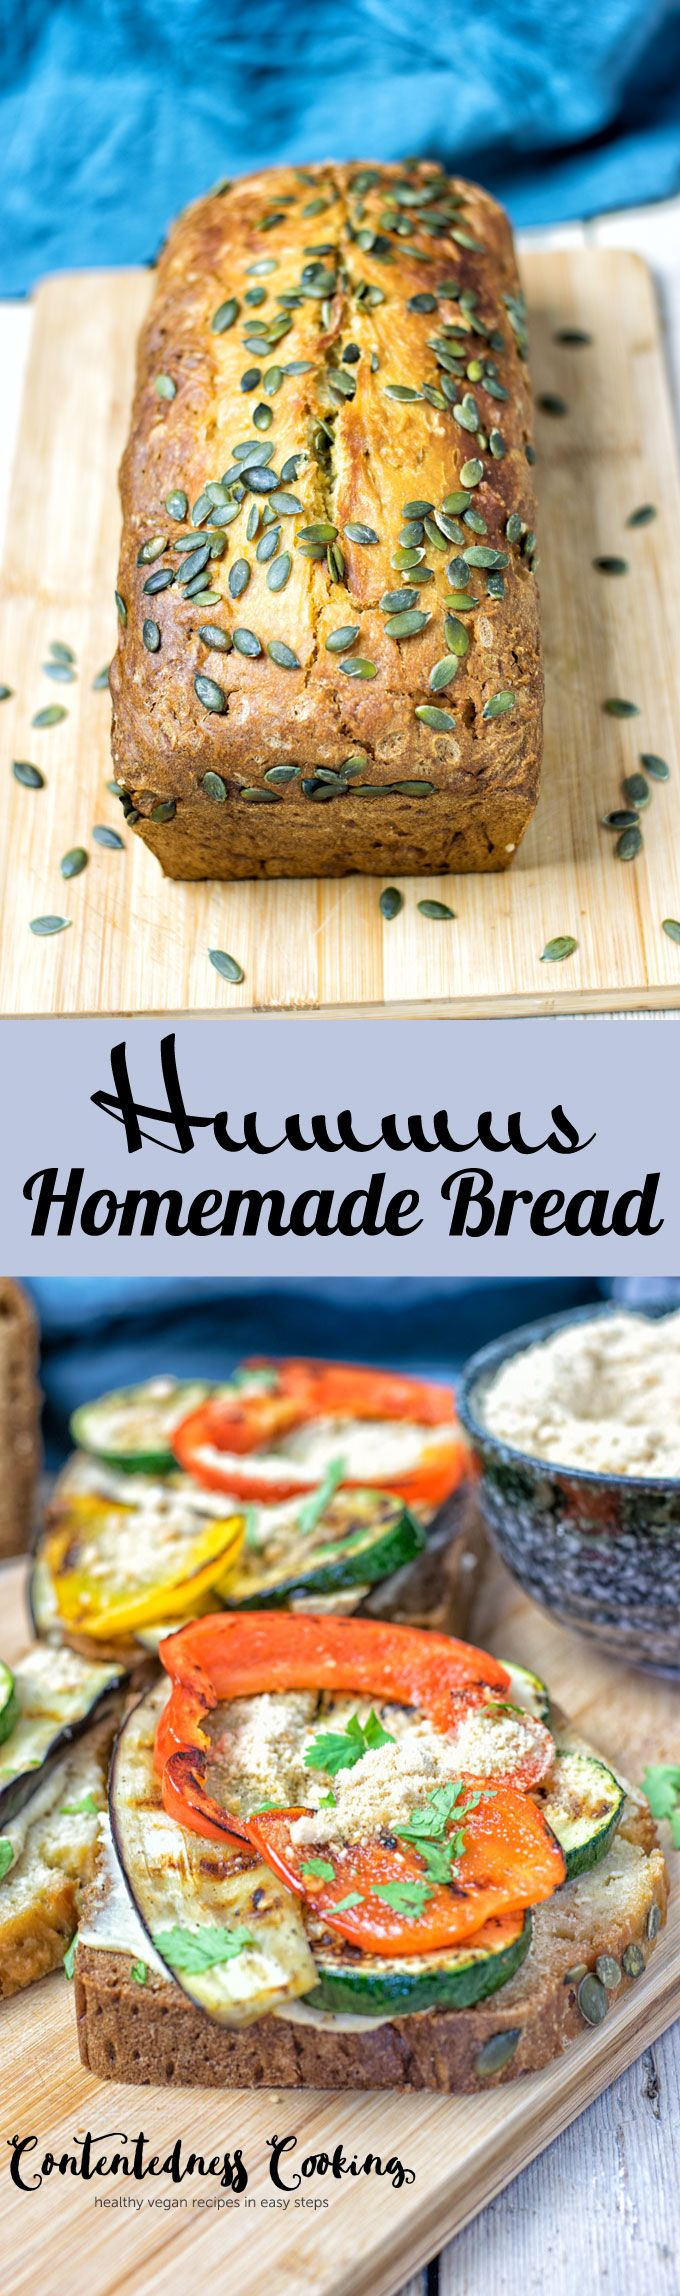 Hummus Homemade Bread made with just 5 ingredients and 2 easy steps, vegan and gluten free. Simple and tasty, this will be the best fresh bread you've ever made. Click to find out how I made this amazing breakfast, lunch, or even dinner staple.